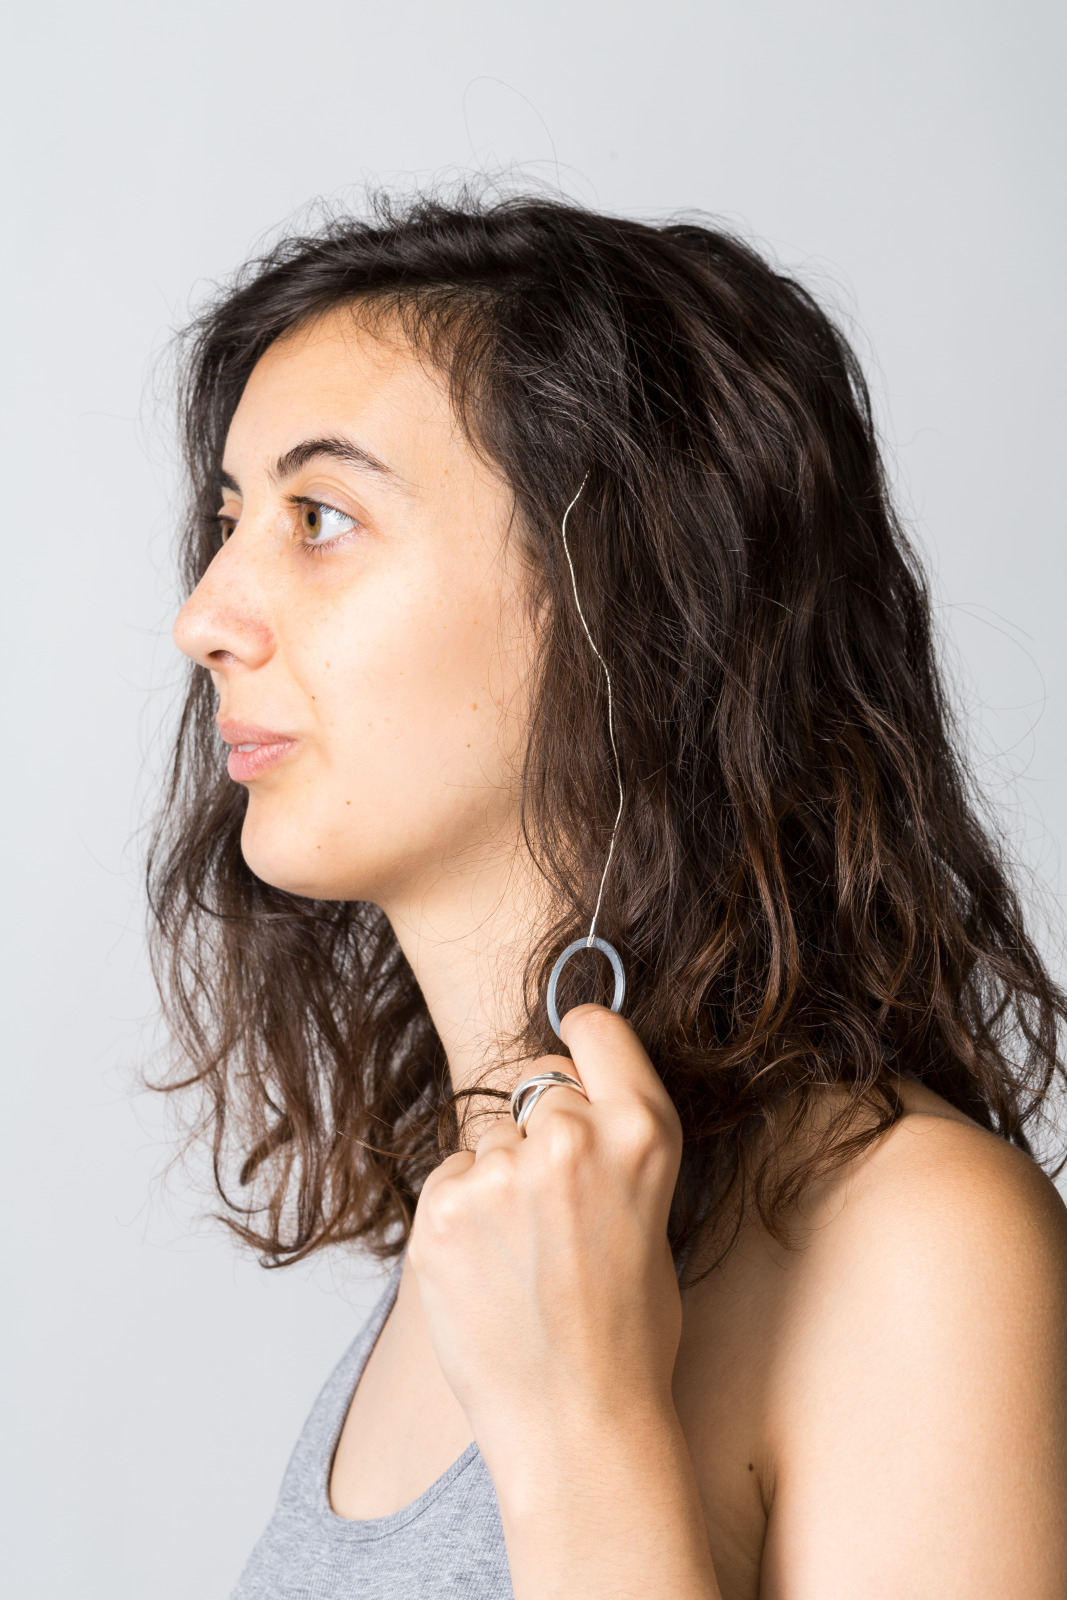 Portrait photo of the ring antenna on a woman